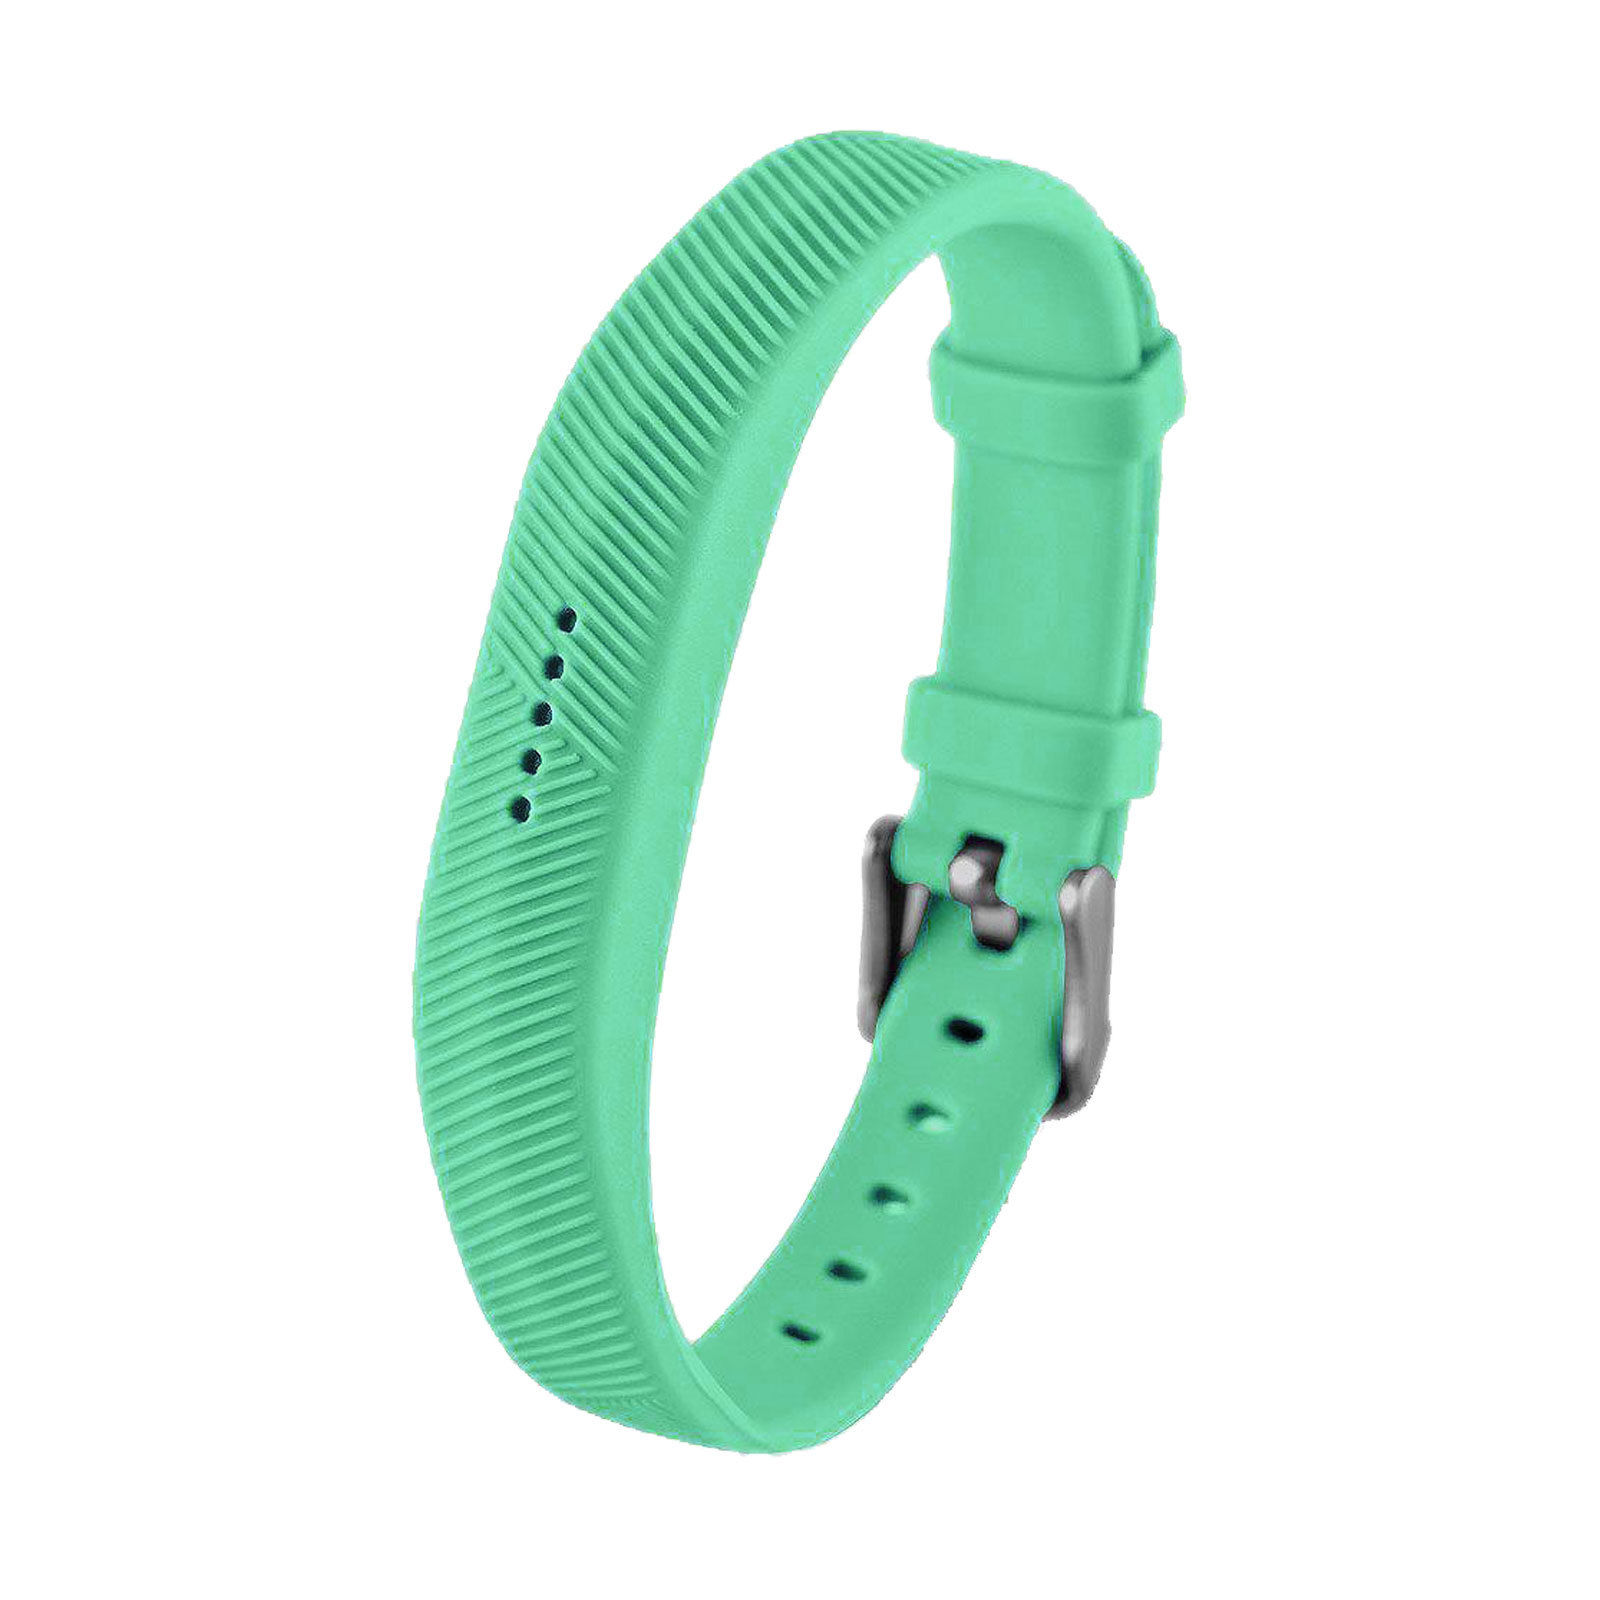 green the up custom glow wrist branded bands blank dark light band banded bracelet wristband in spectrum merchandising led products